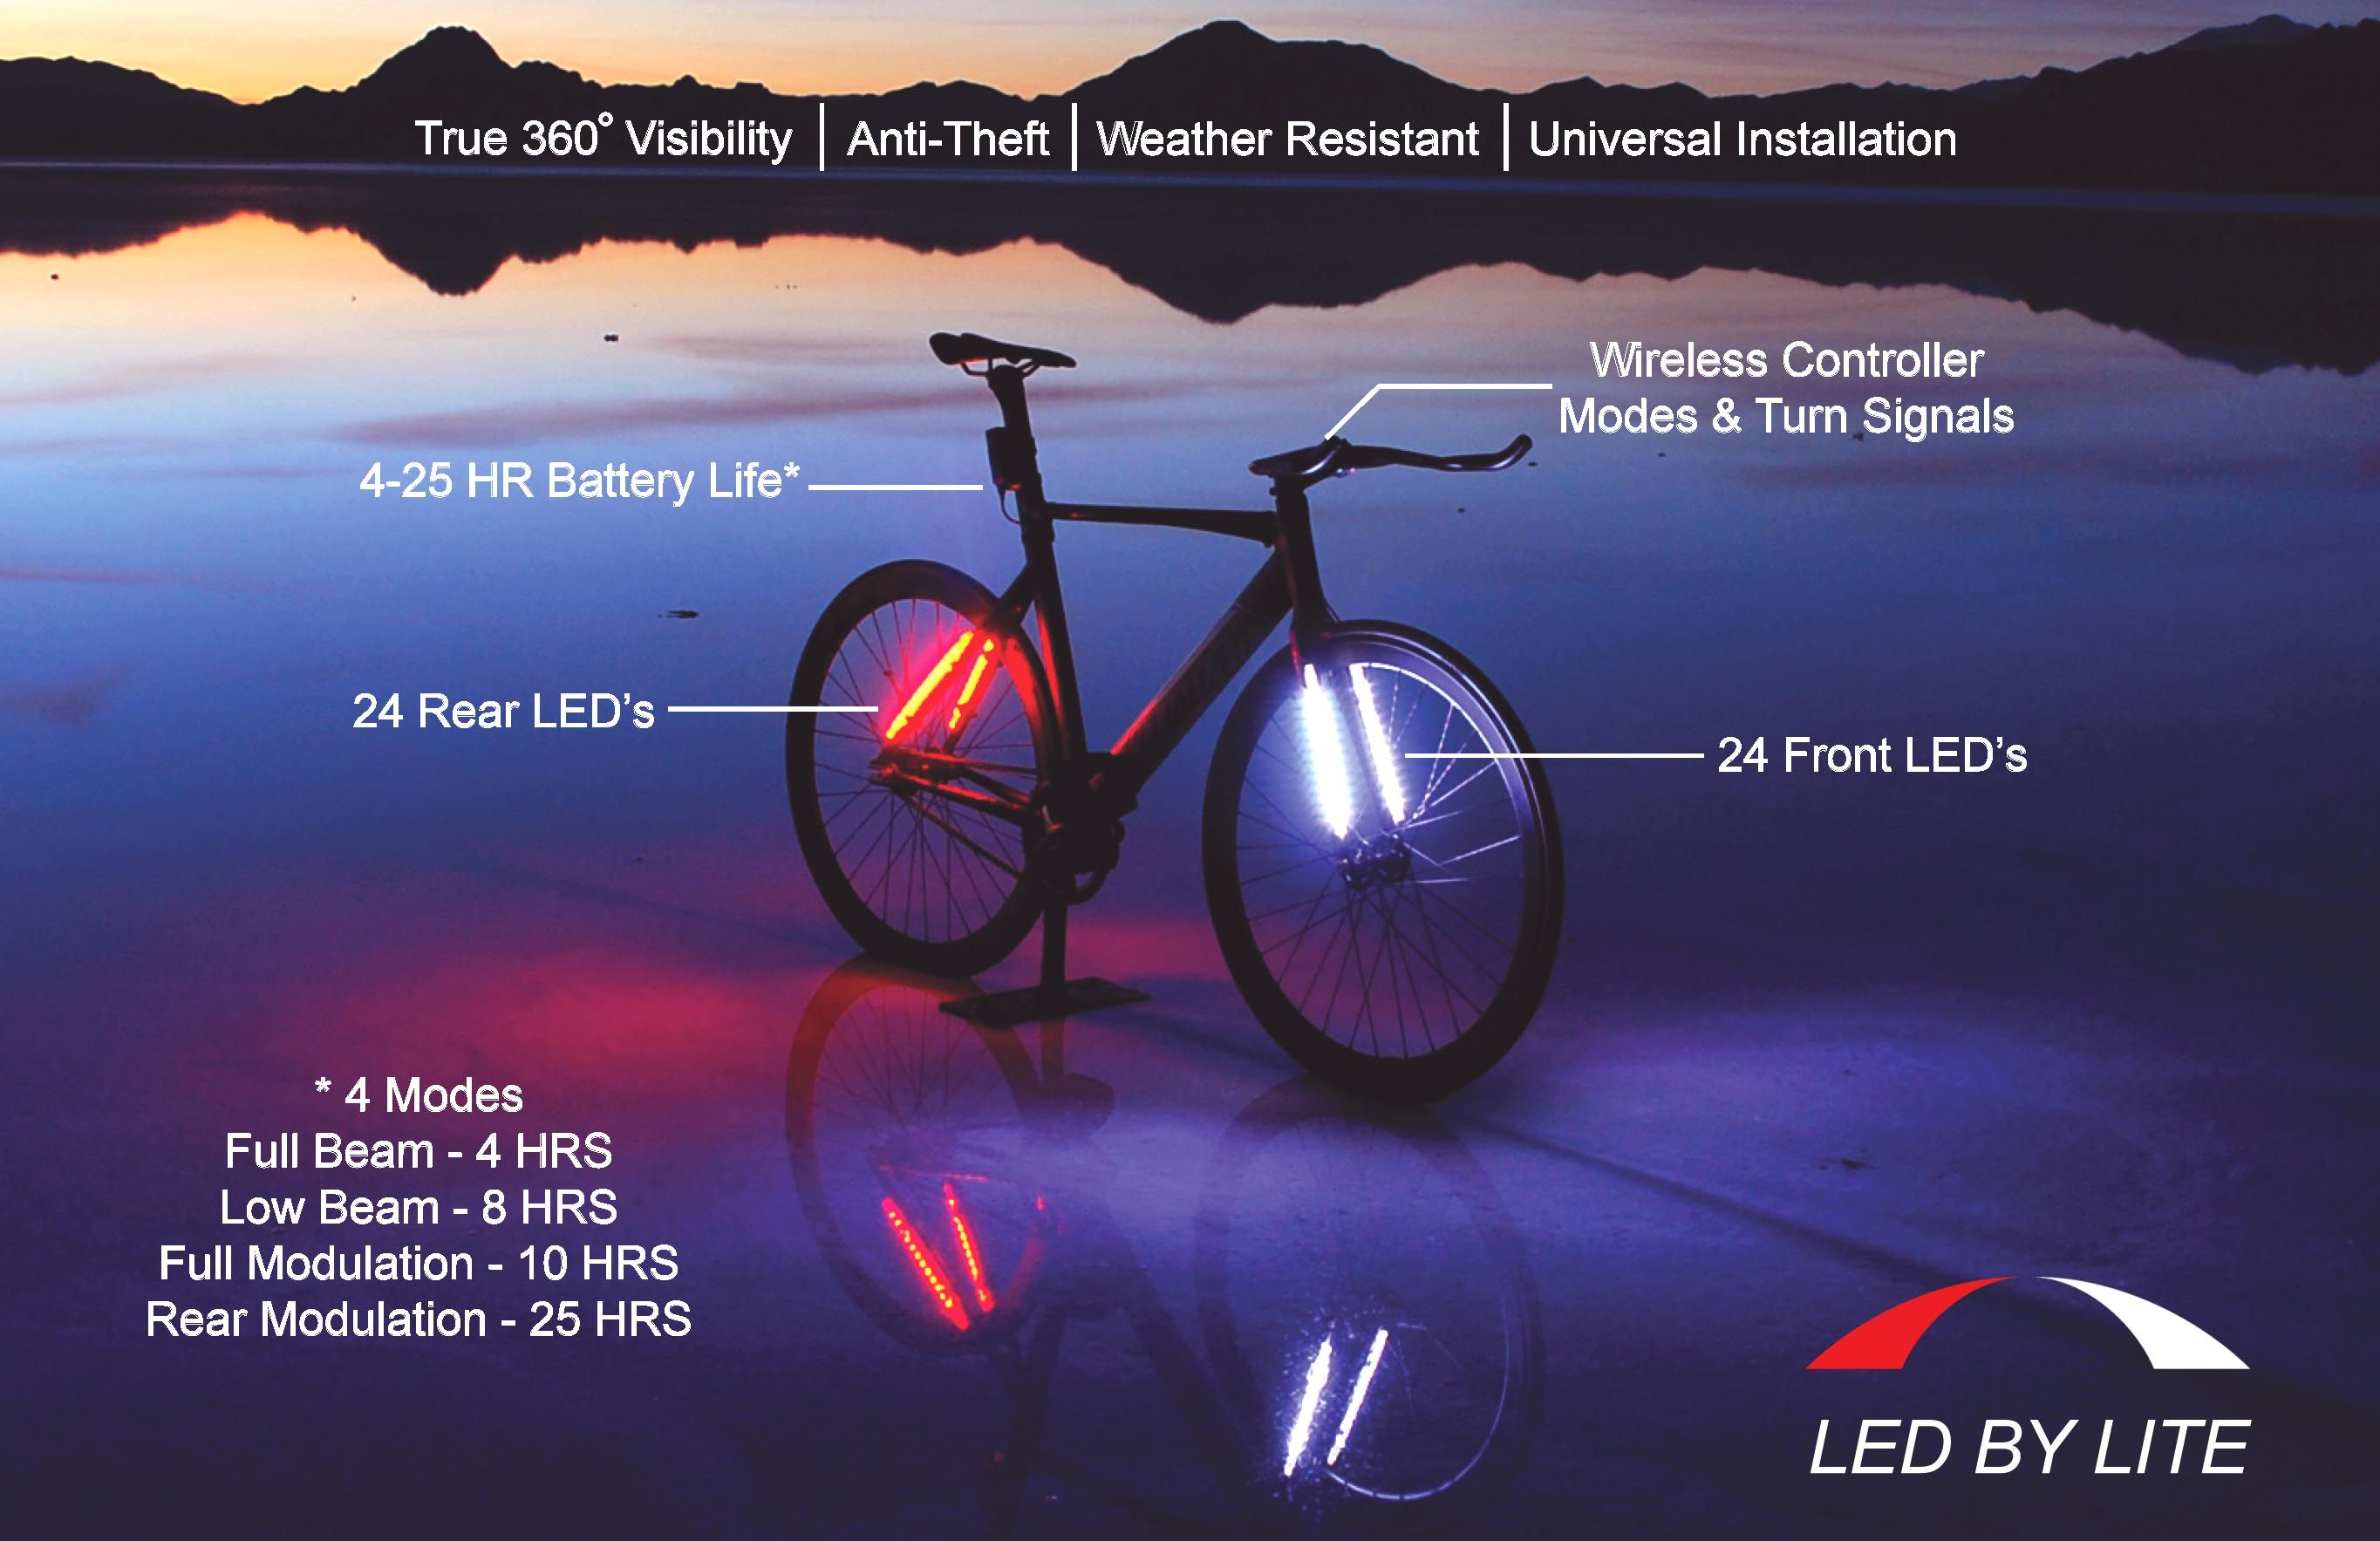 lightrider light bike diy lights led lighting id